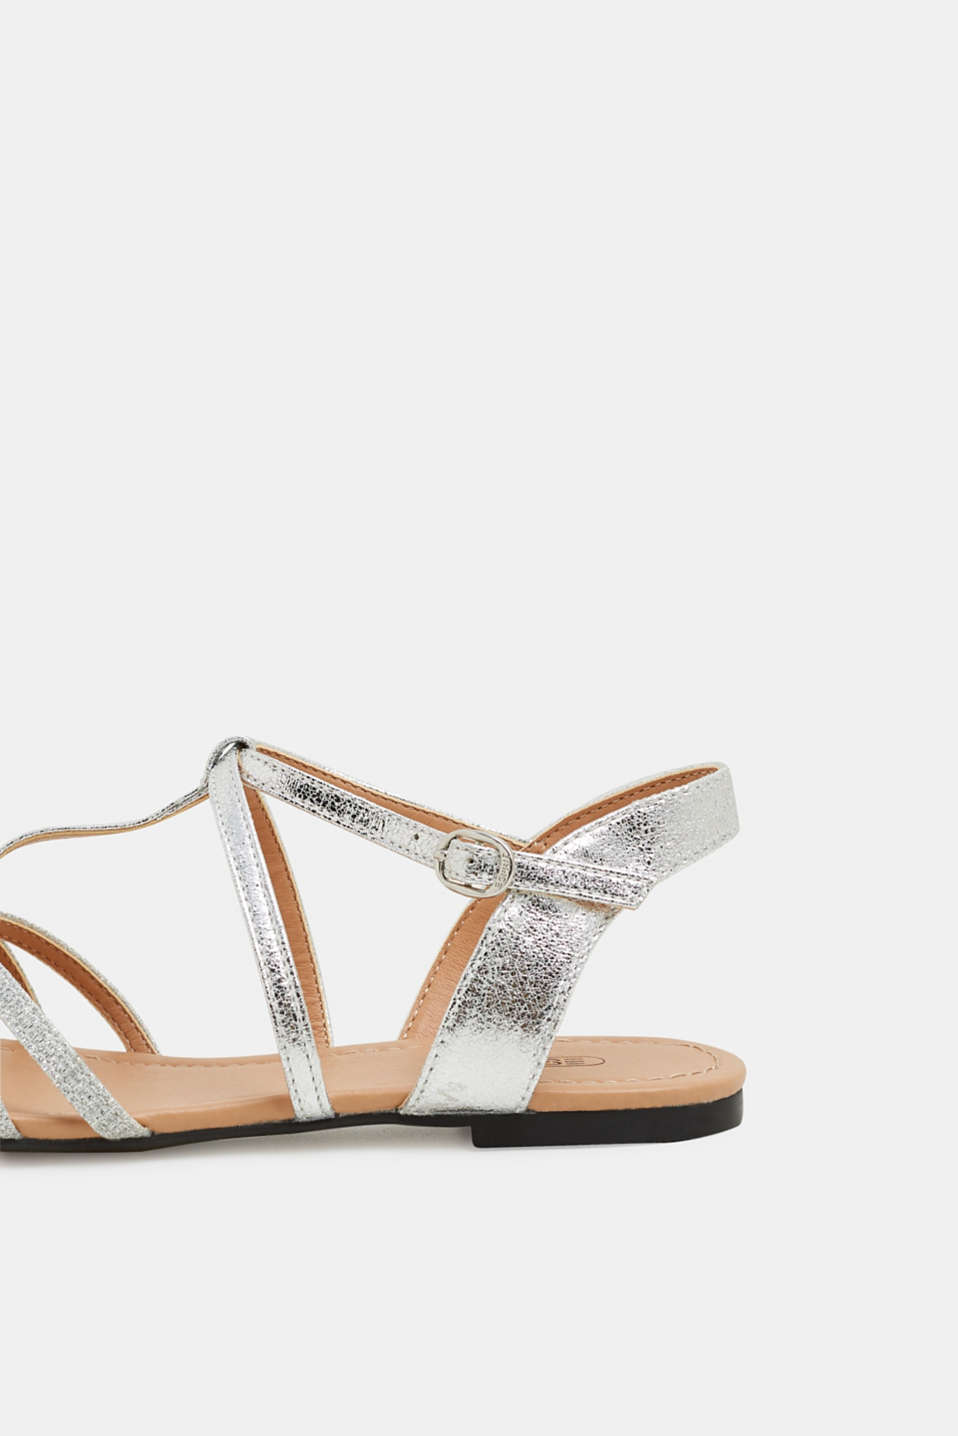 Sandals with glitter, in faux leather, SILVER, detail image number 5